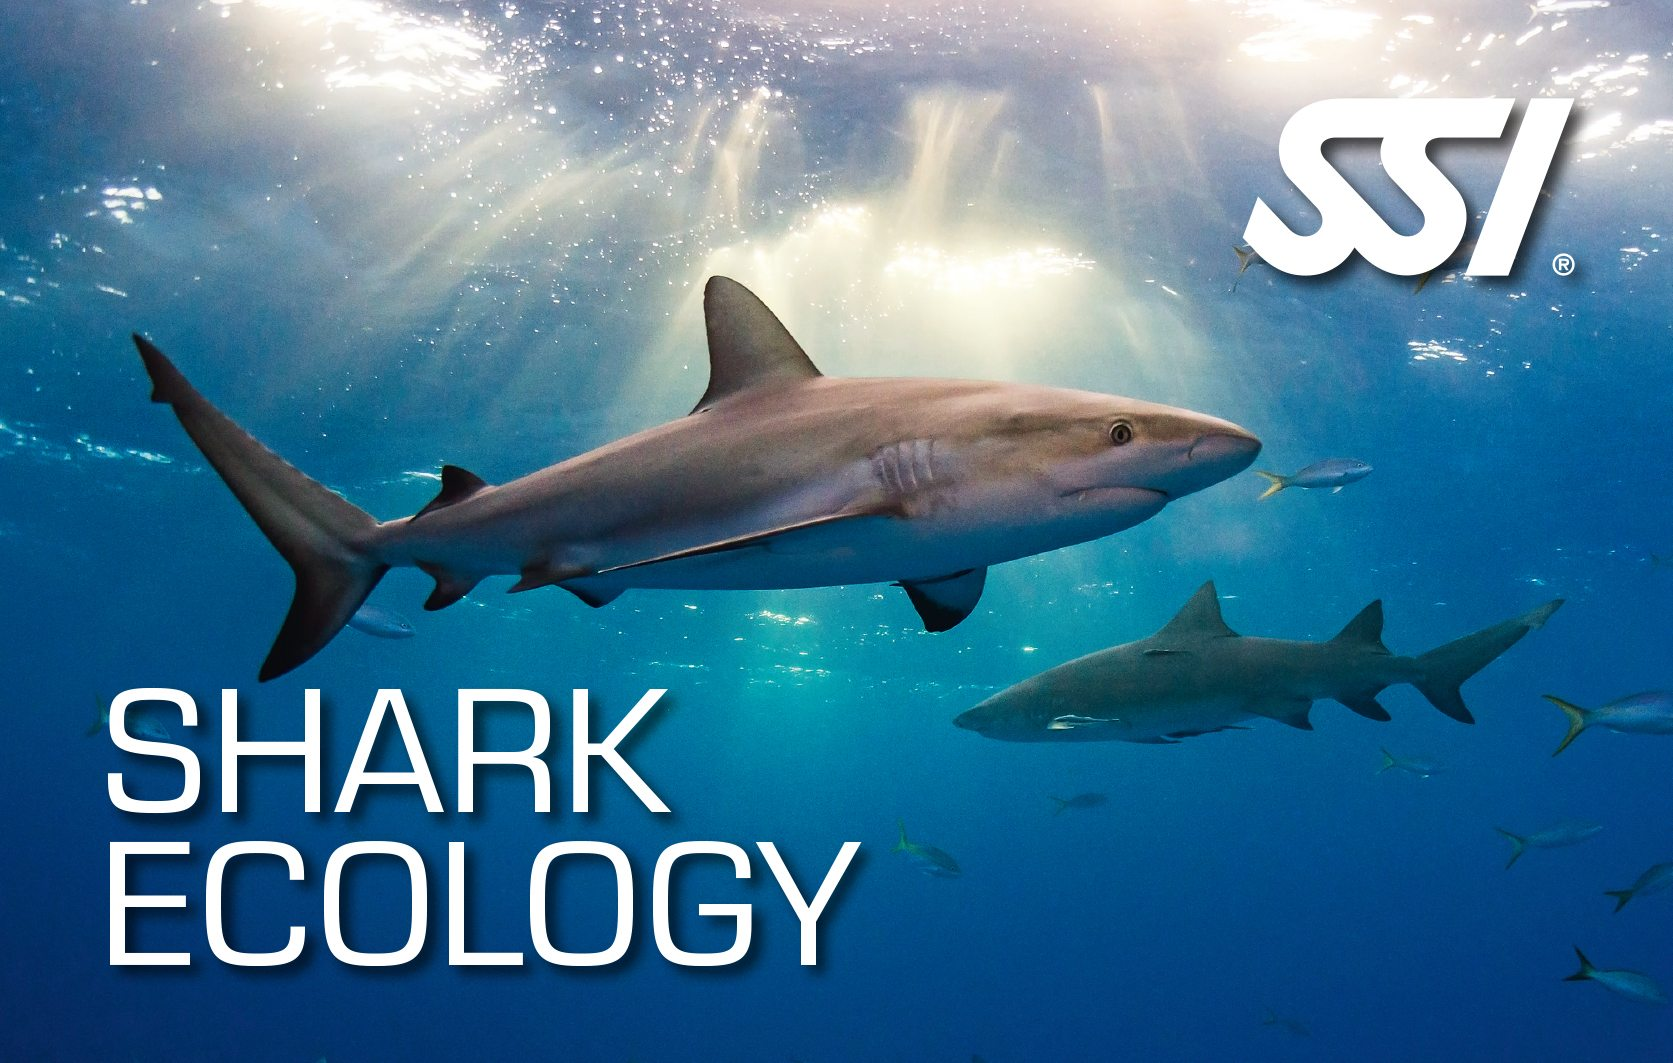 SSI Shark Ecology Course